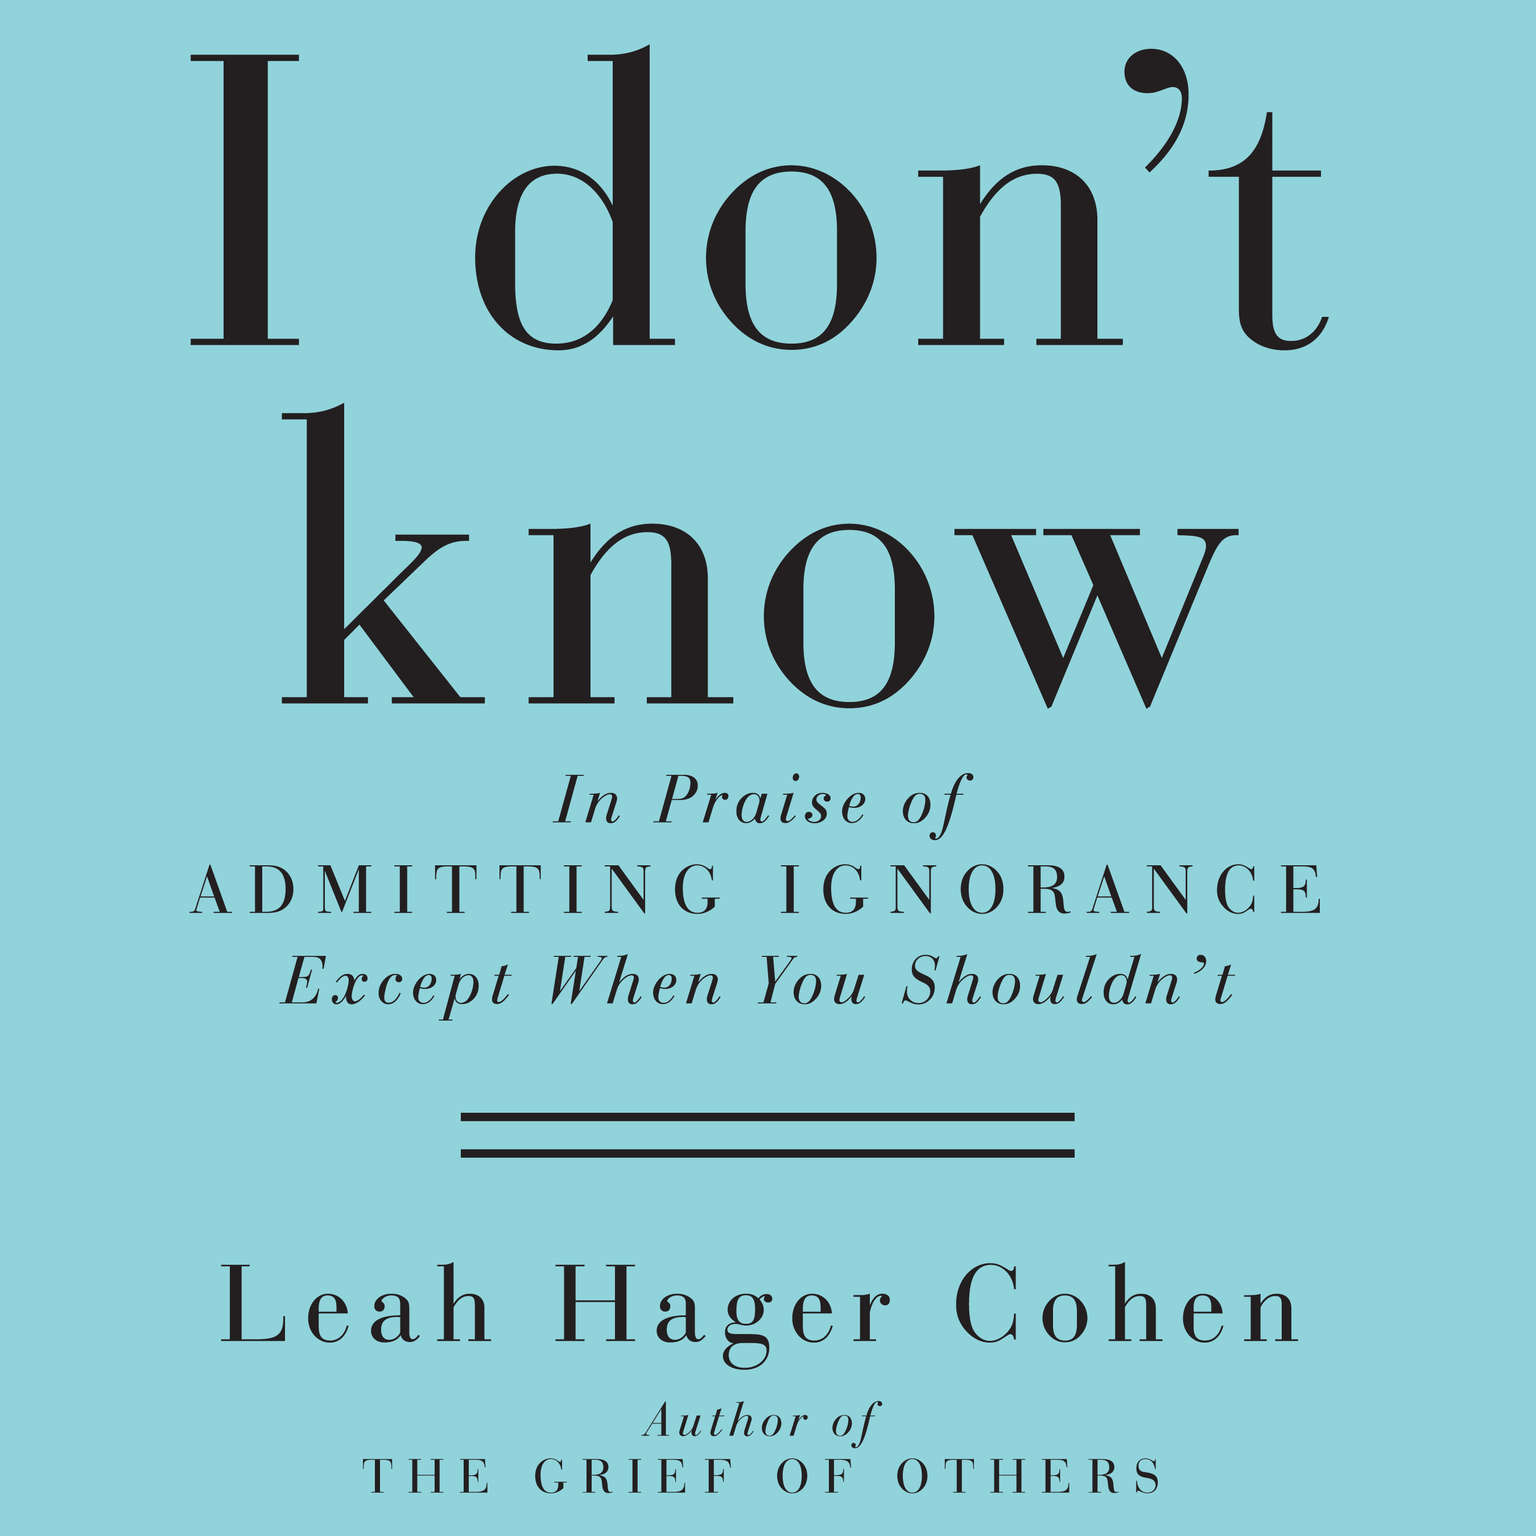 Printable I Don't Know: In Praise of Admitting Ignorance (Except When You Shouldn't) Audiobook Cover Art